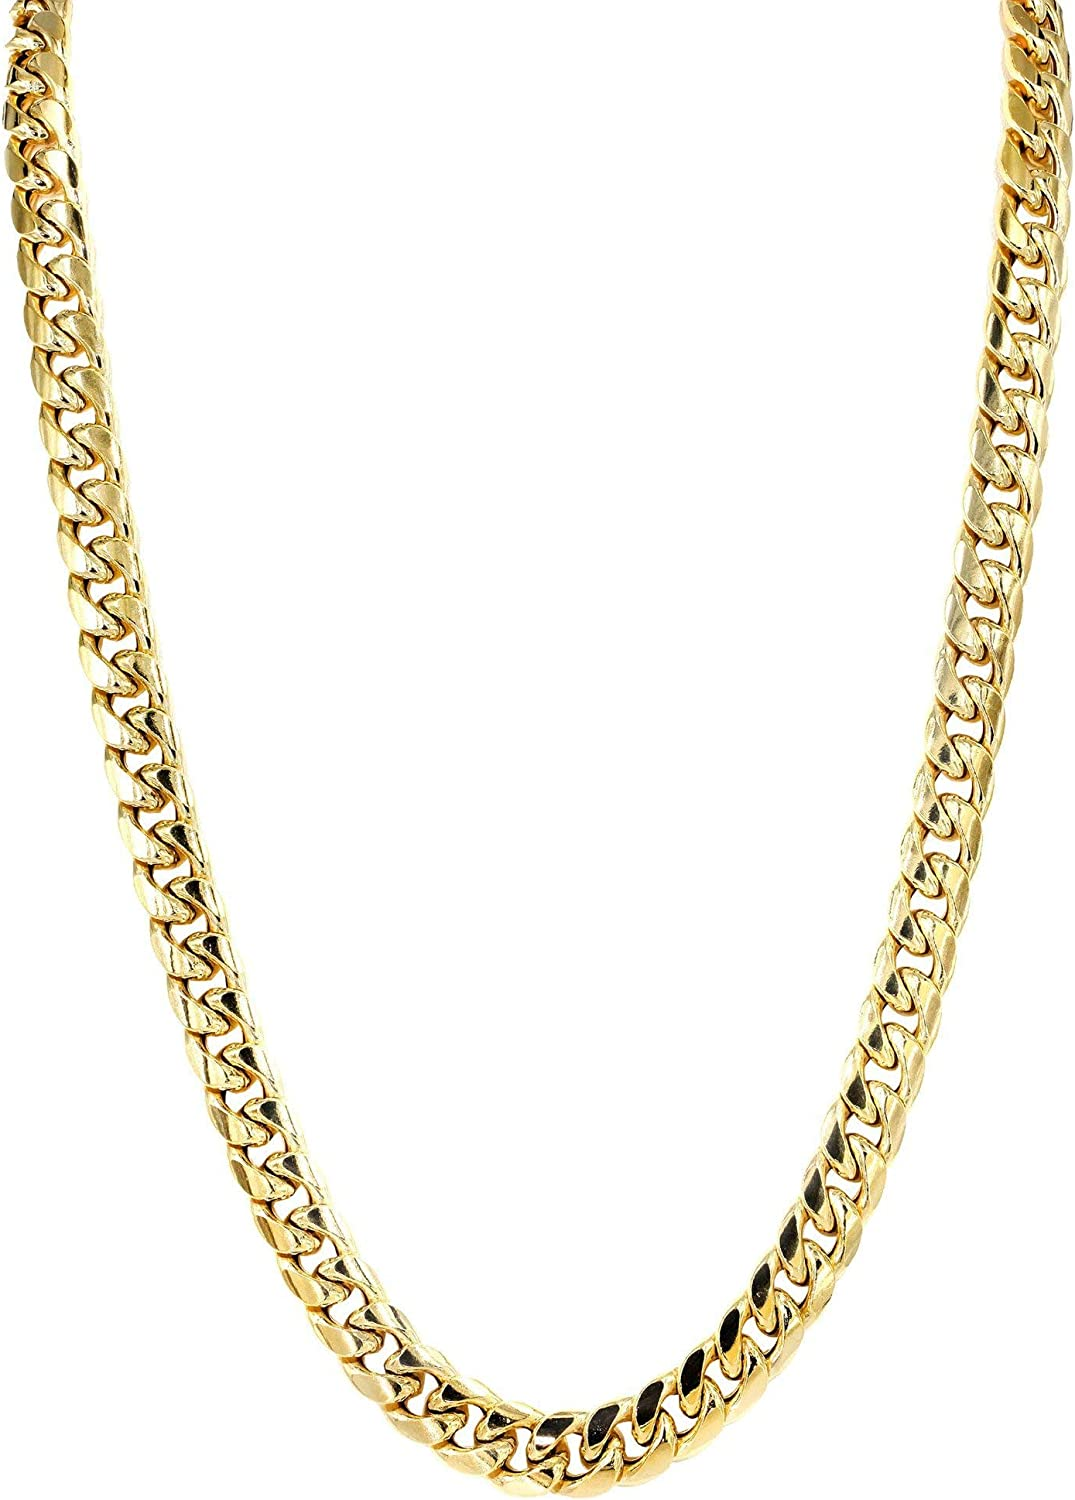 Orostar 10K Yellow Gold 7MM Miami Cuban Curb Link Chain and Bracelet with Box Lock Clasp